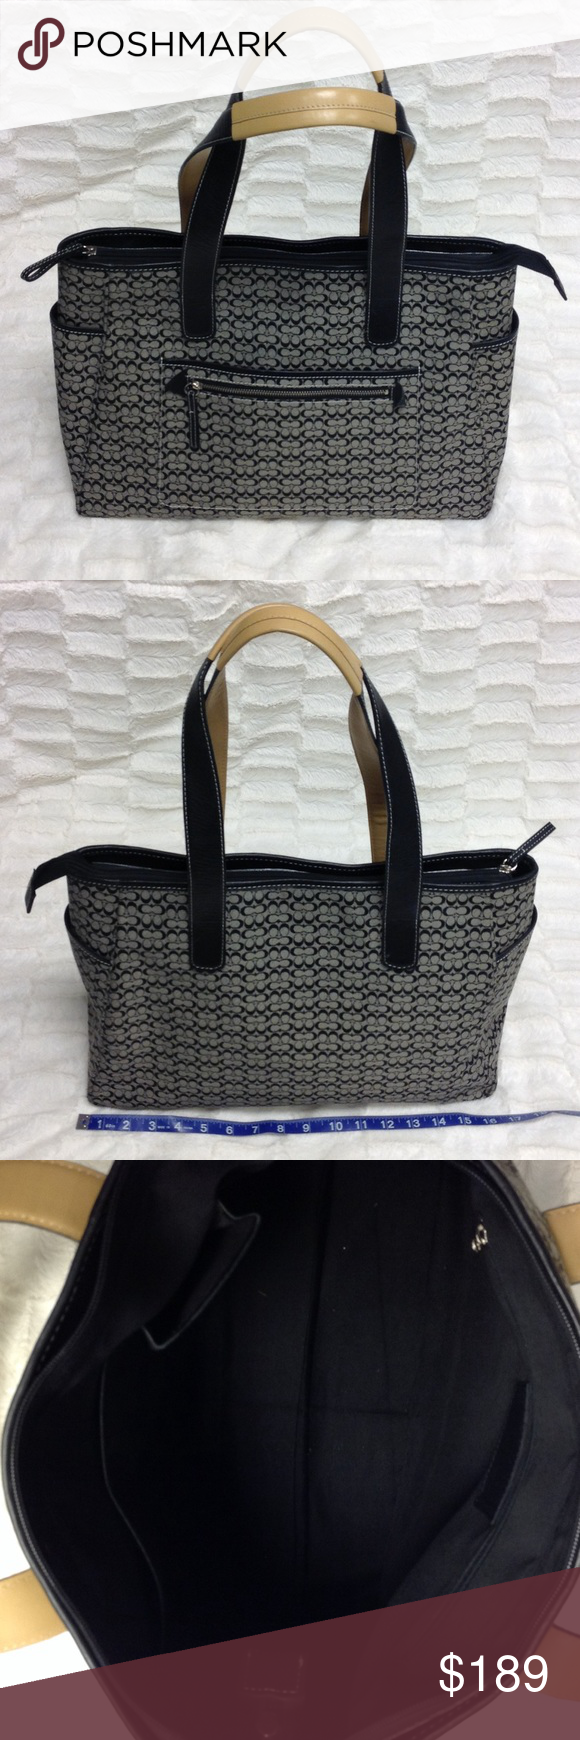 COACH Large Tote Y117 😍😍This Coach tote is large enough to double as a diaper bag! It is the signature C print with black/tan leather handles and white stitching! Large zip top and zippered interior pocket and side wall pockets. 1 open/1 zippered outside pocket. 2 side end pockets. ****Very gently pre-loved, shows minor wear with minor marks on black interior lining from use. Coach Bags Totes